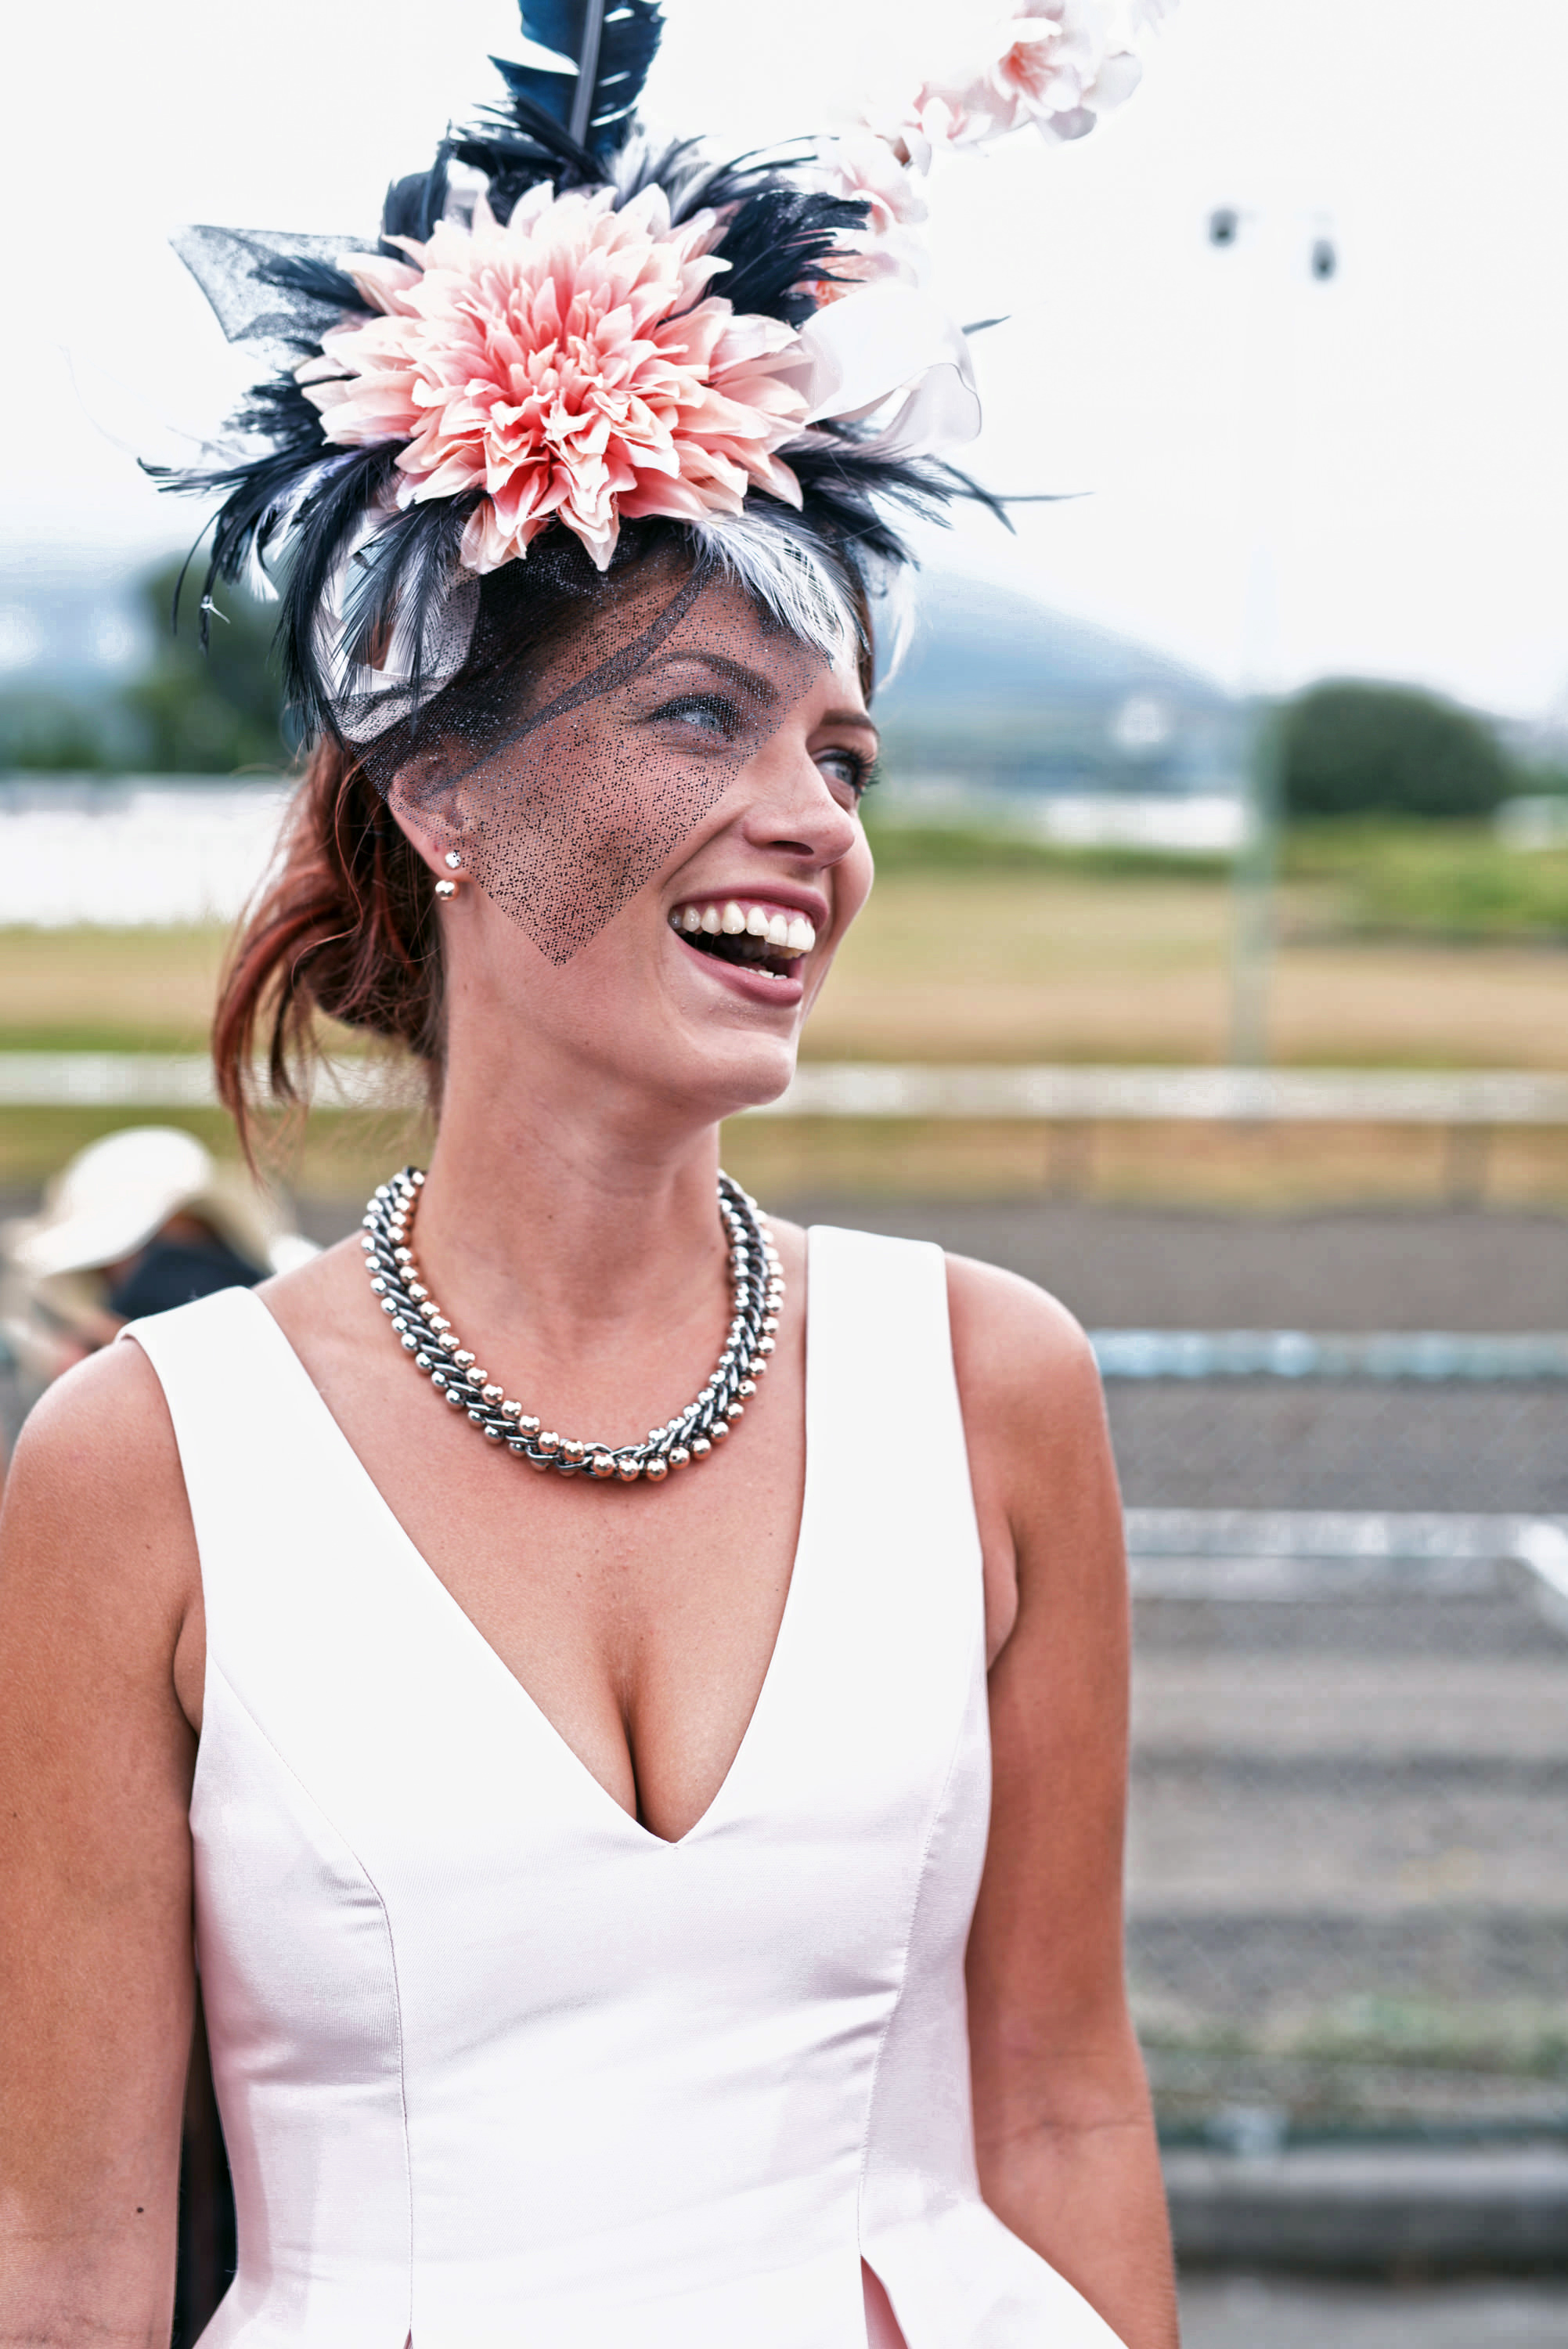 Deighton Cup 2017 - photo credit to Mark Lewis Exposure - 17.jpg